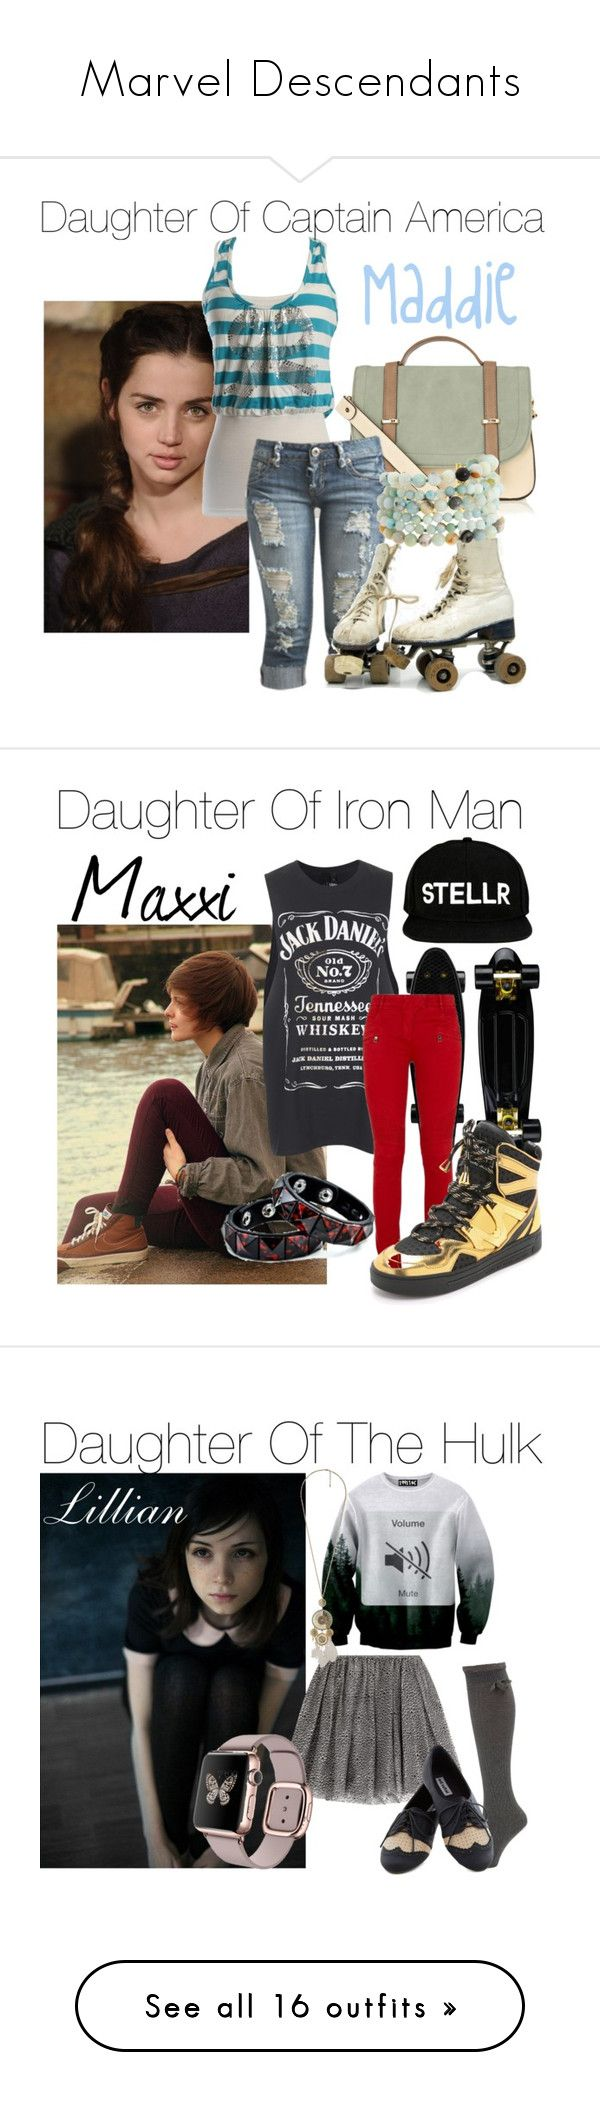 """""""Marvel Descendants"""" by say13579 ❤ liked on Polyvore featuring Warehouse, Wet Seal, Kenneth Jay Lane, Tee and Cake, Balmain, Marc by Marc Jacobs, VIPARO, RED Valentino, Forever 21 and Halston Heritage"""